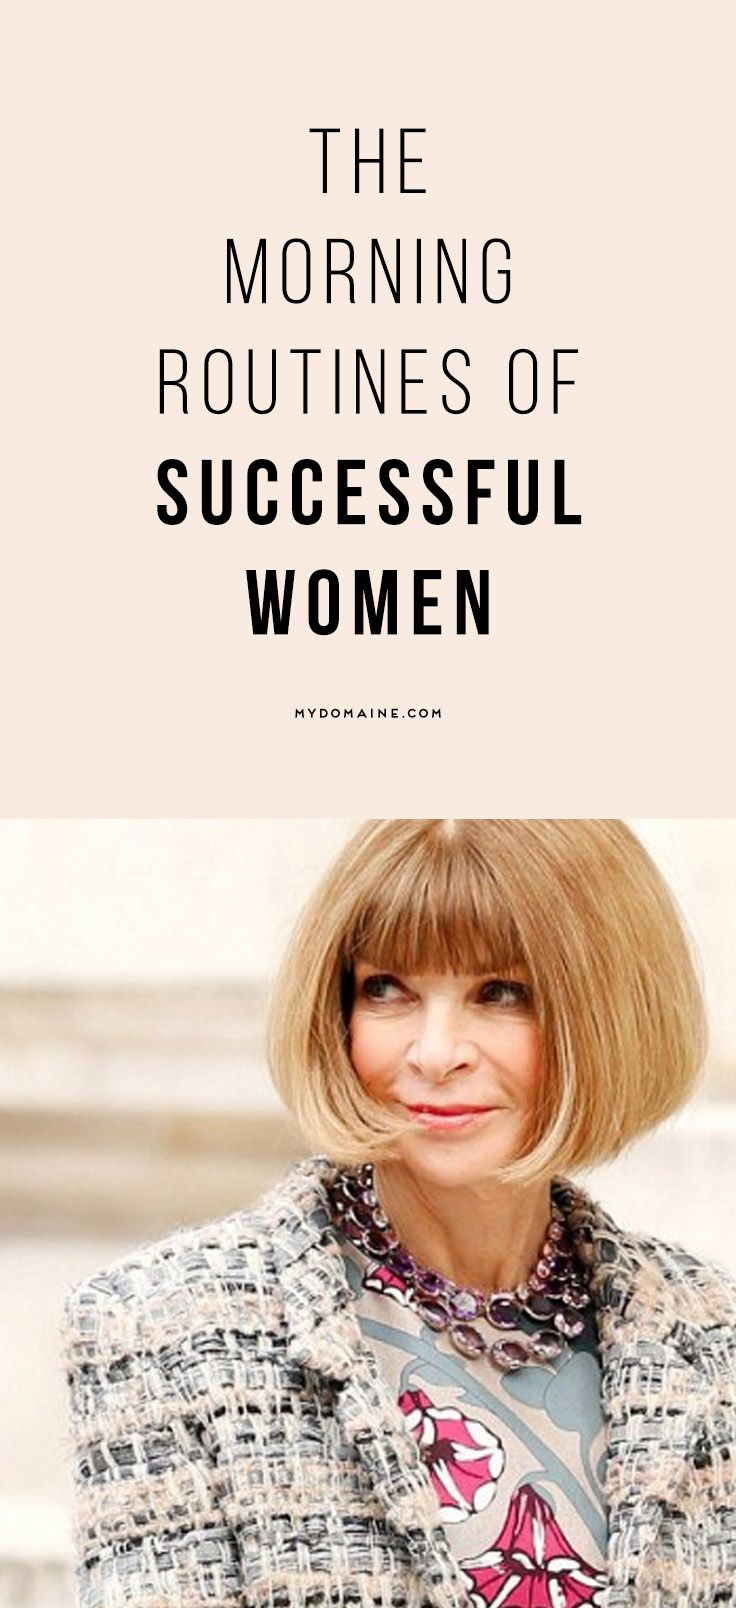 We're loving these morning routines of successful women!